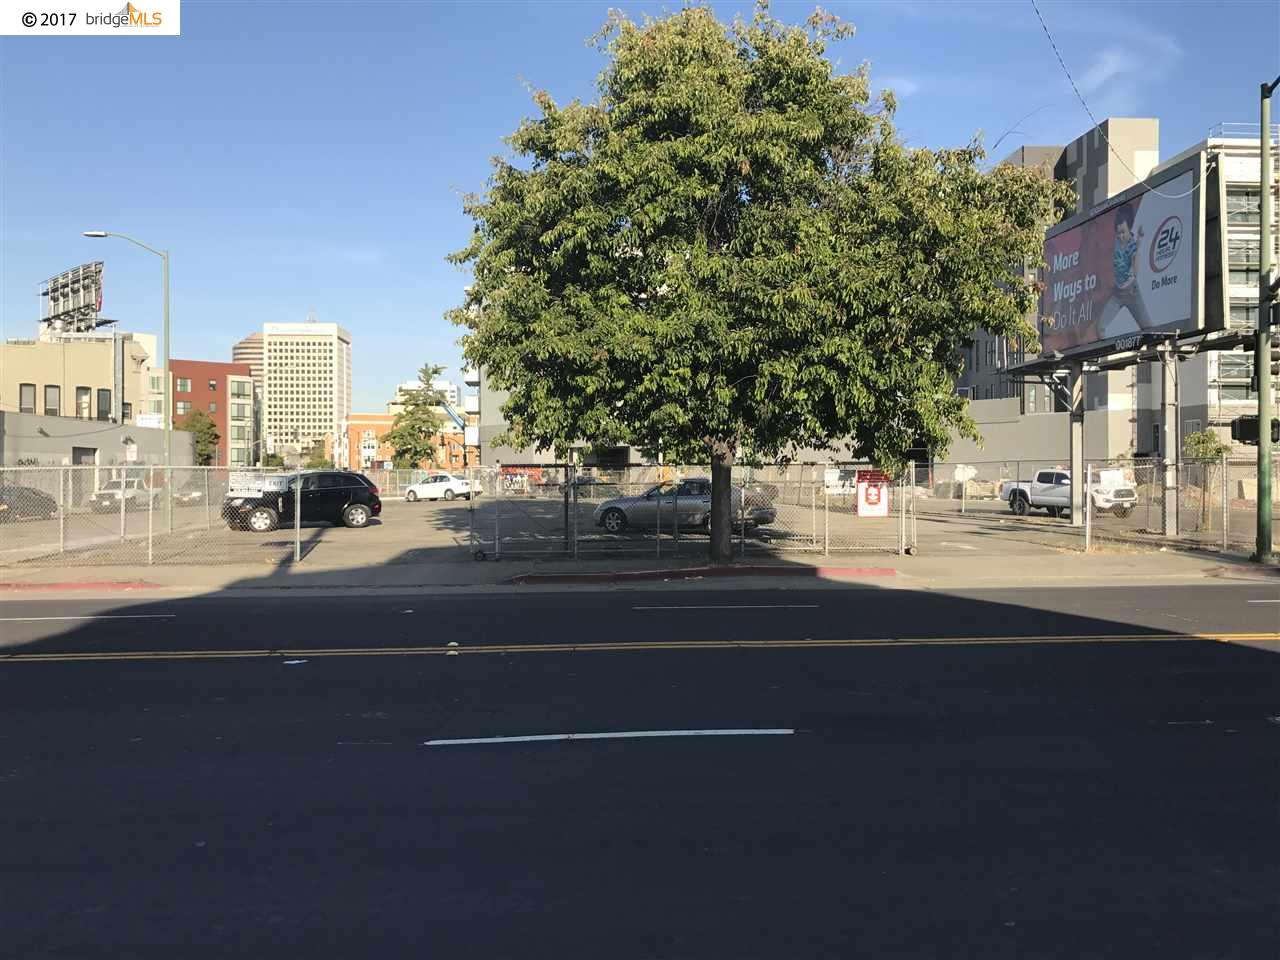 Additional photo for property listing at Lot 19 Martin Luther King Jr Way  Oakland, カリフォルニア 94612 アメリカ合衆国